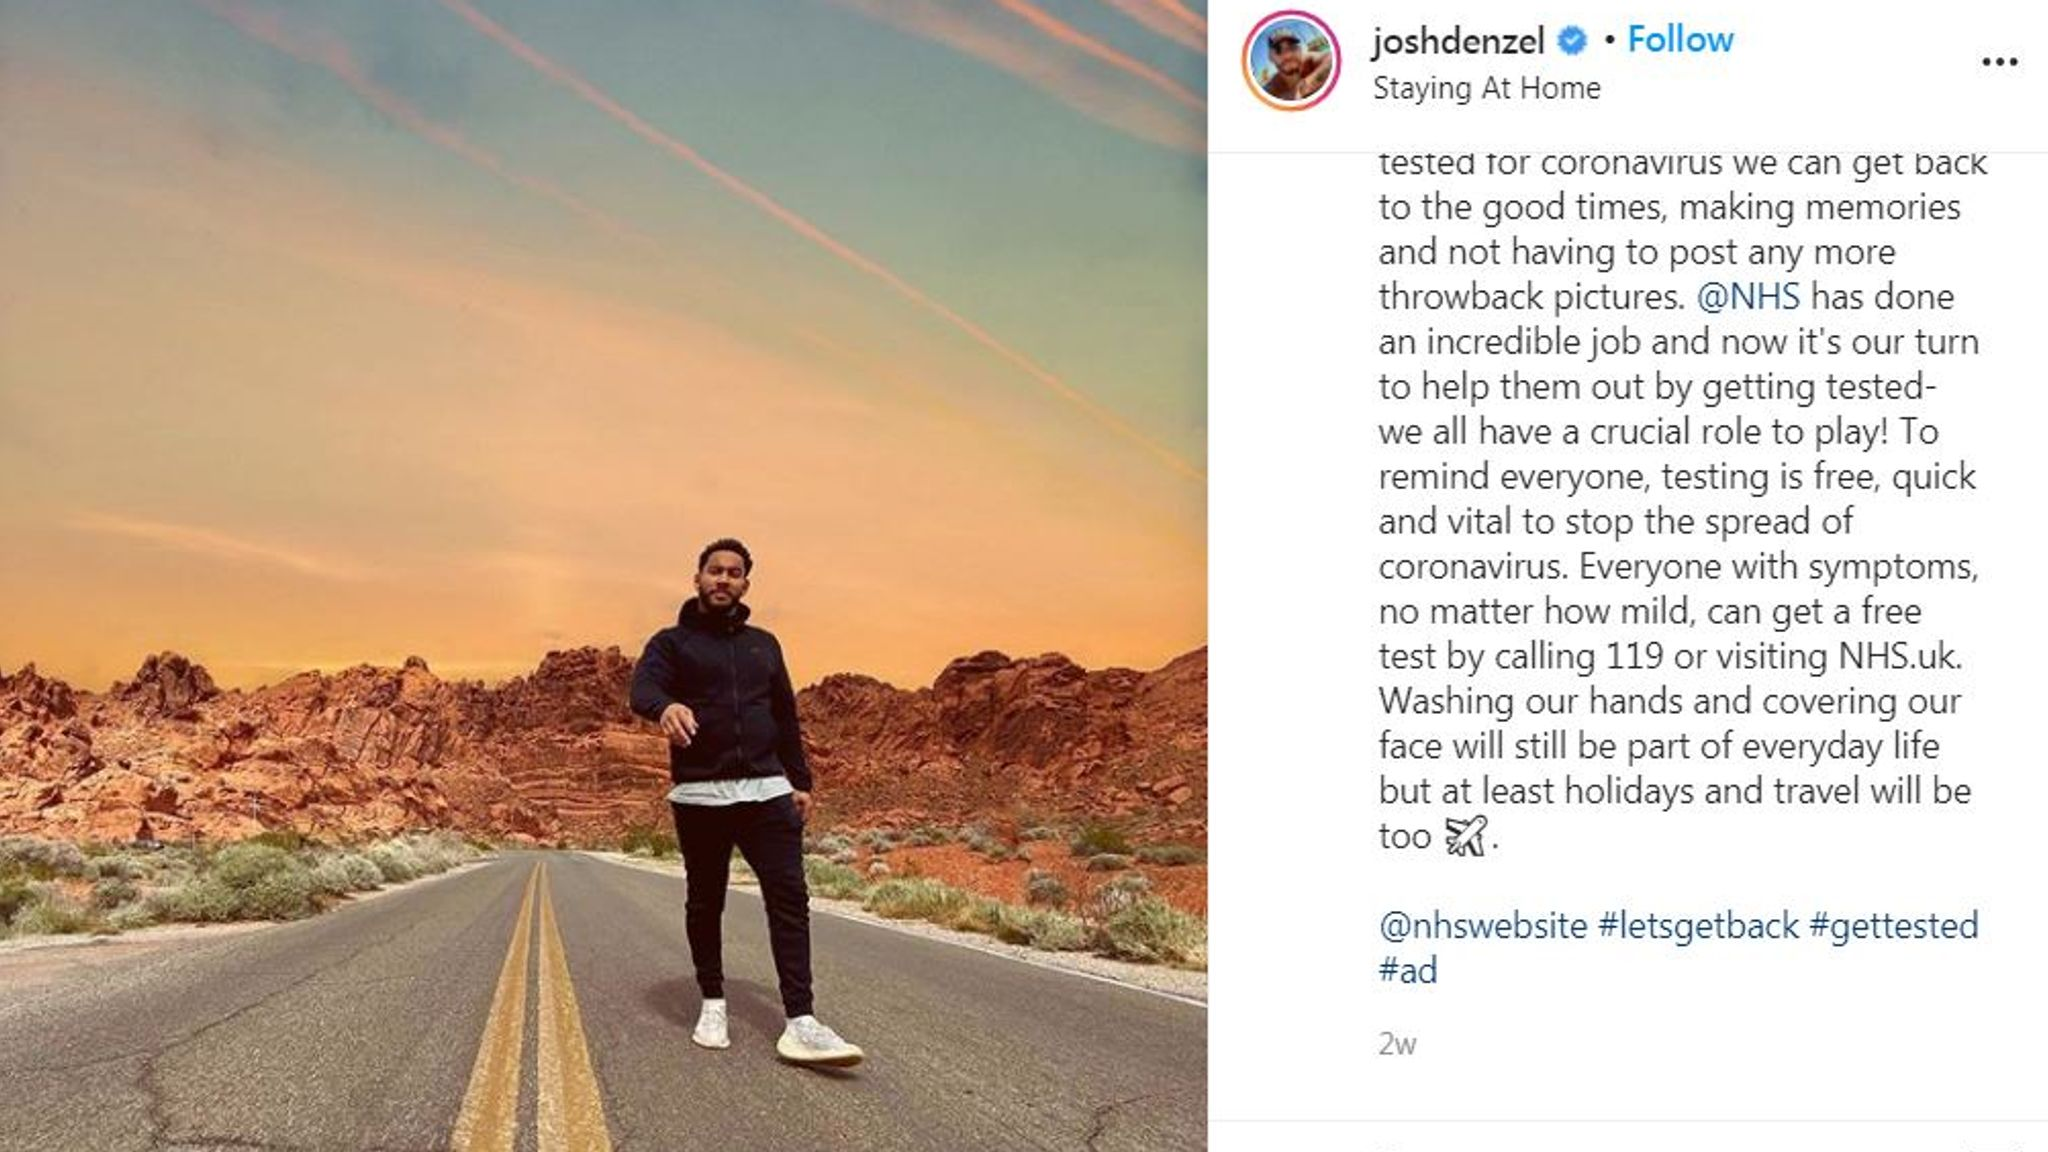 Former Love Island contestant Josh Denzel urged his followers to get tested if they had symptoms. Pic: Instagram/Josh Denzel